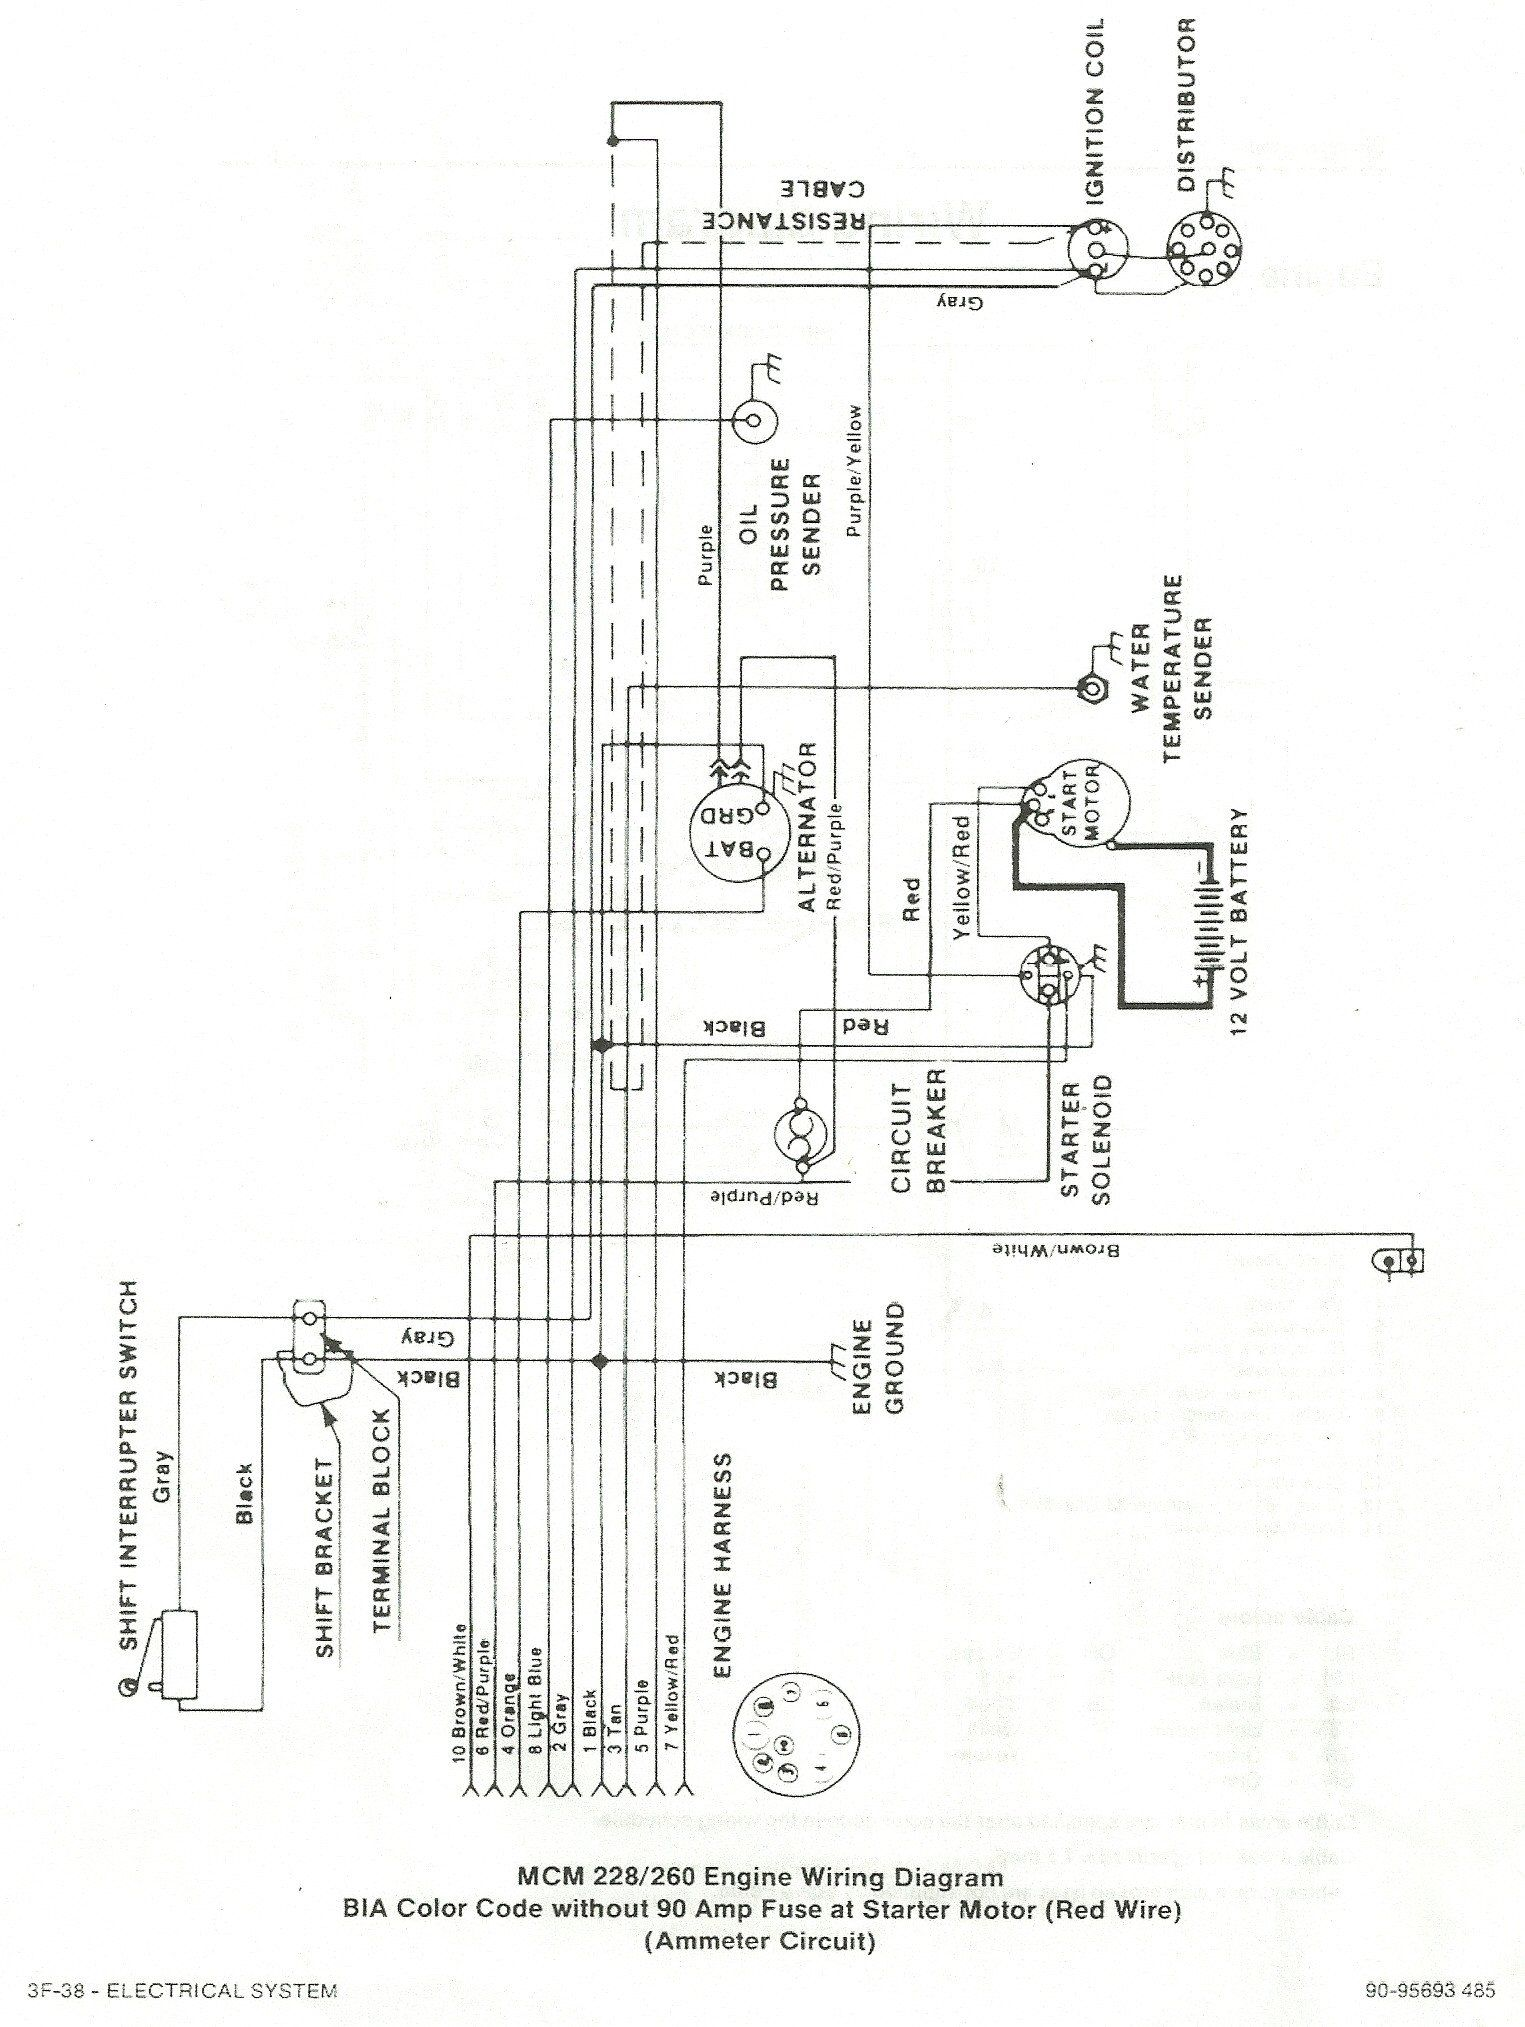 1989 mercruiser 7 4 engine diagram wiring diagram toolbox 1984s 10 wiring diagram [ 1525 x 2027 Pixel ]